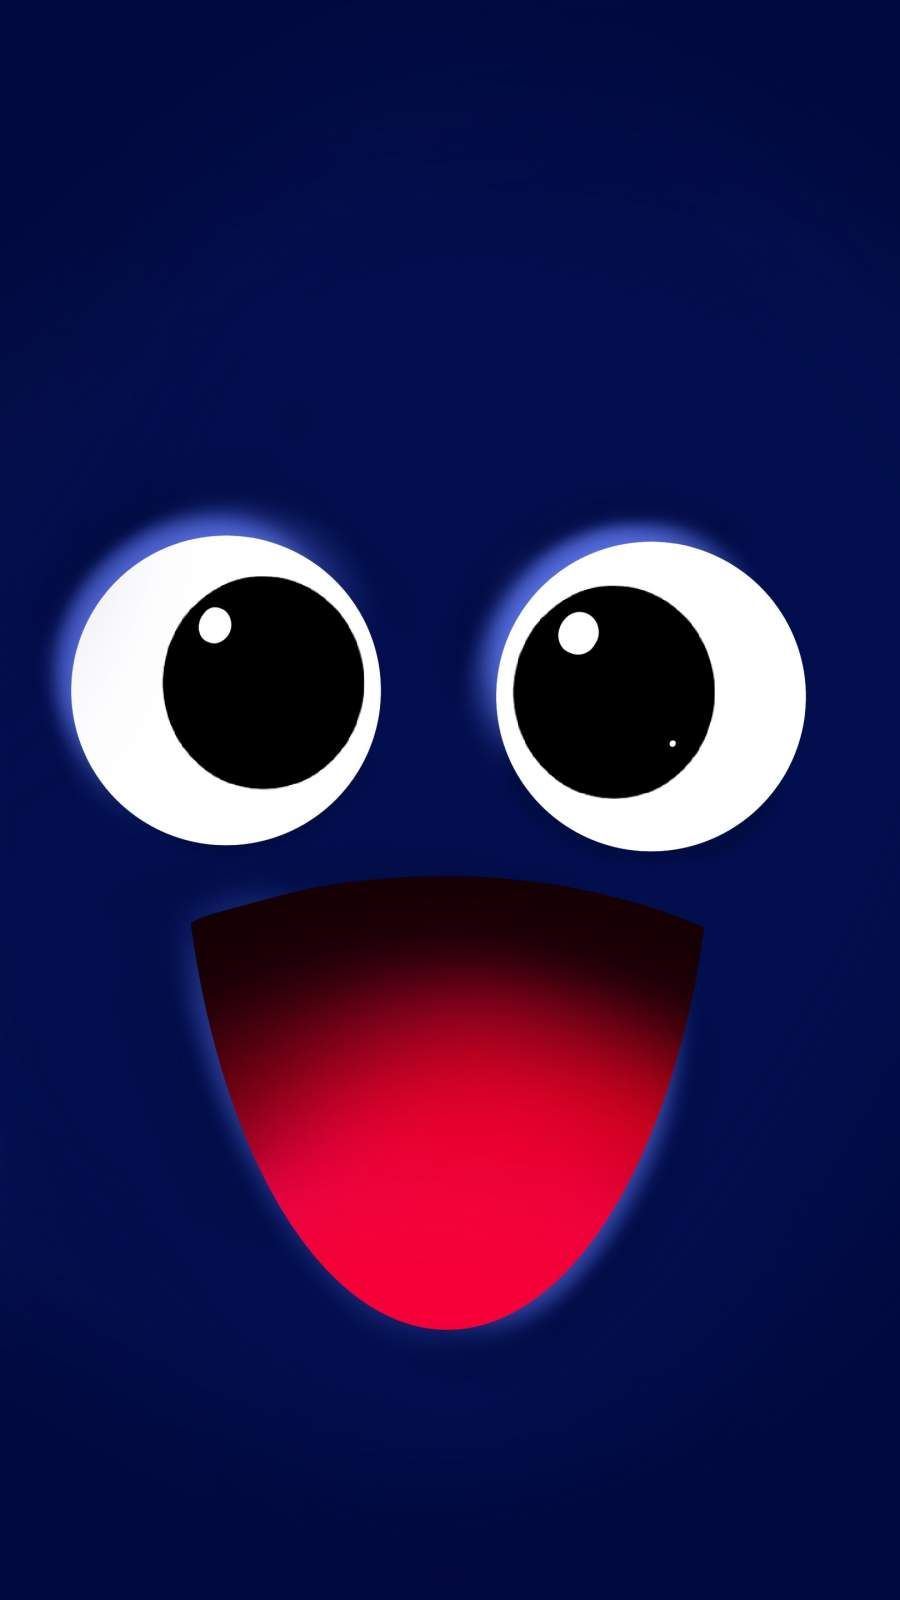 Happy Face iPhone Wallpaper - iPhone Wallpapers